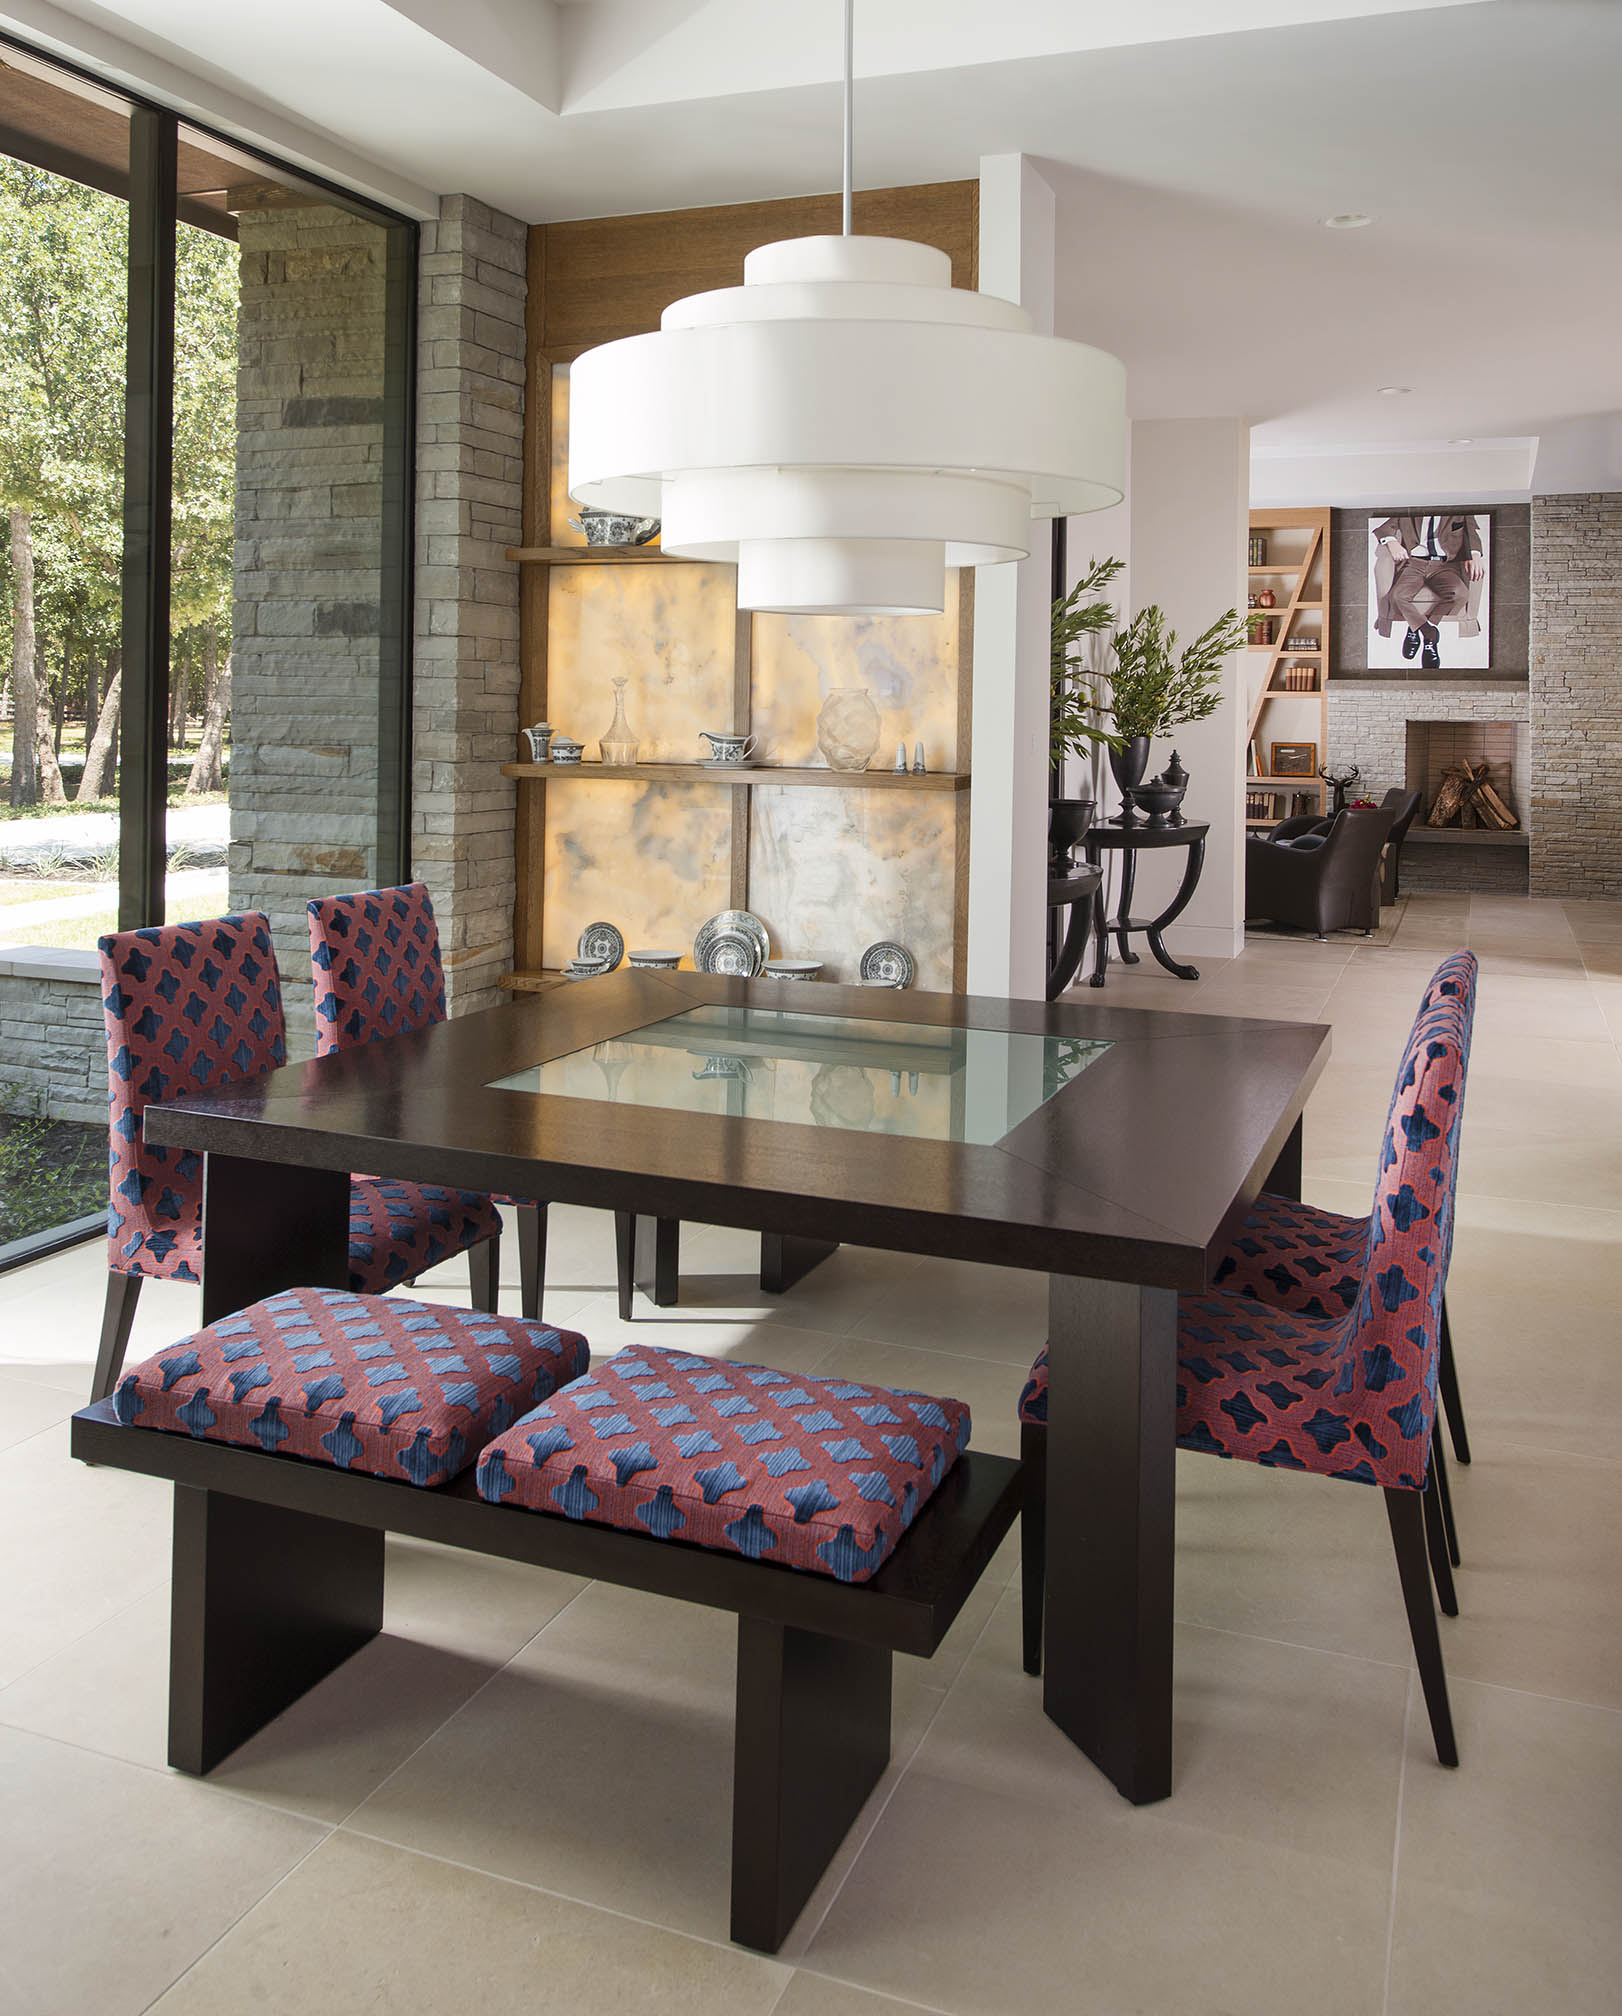 Modern family dining room by Denise McGaha Interiors